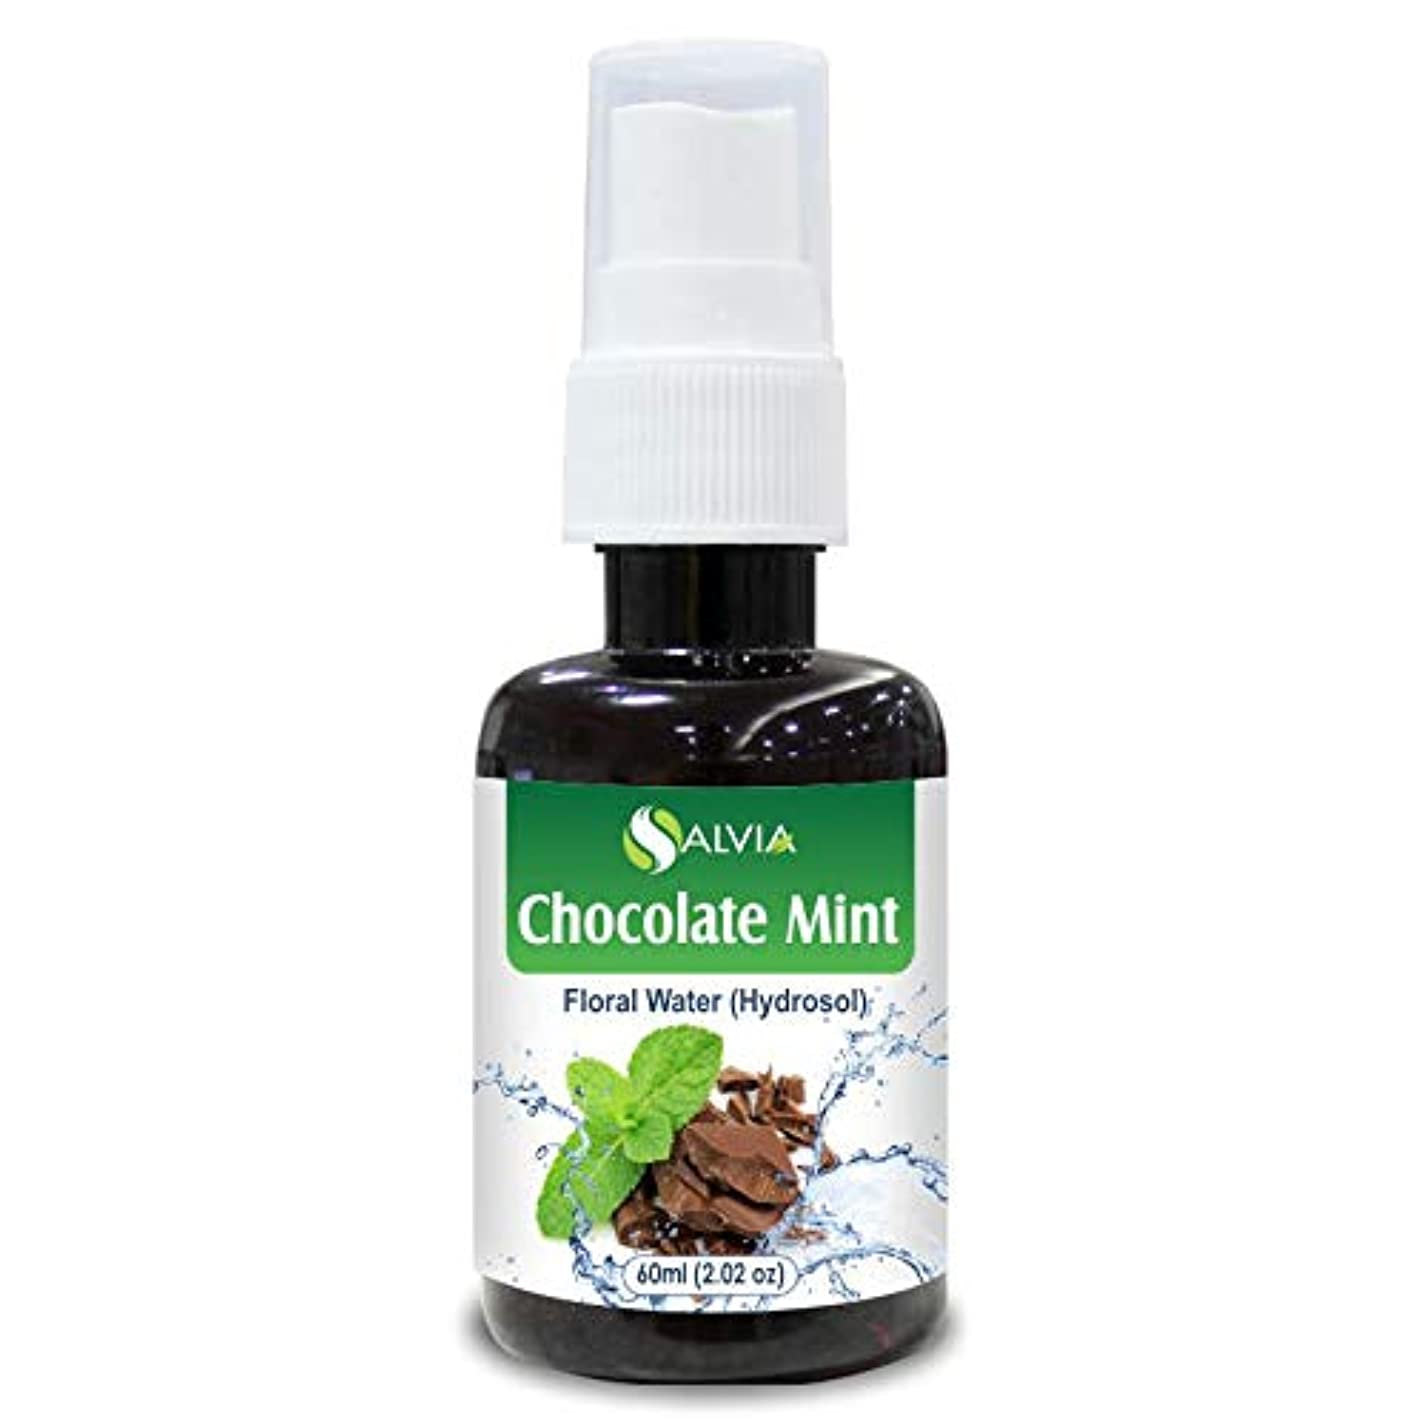 Chocolate Mint Floral Water 60ml (Hydrosol) 100% Pure And Natural